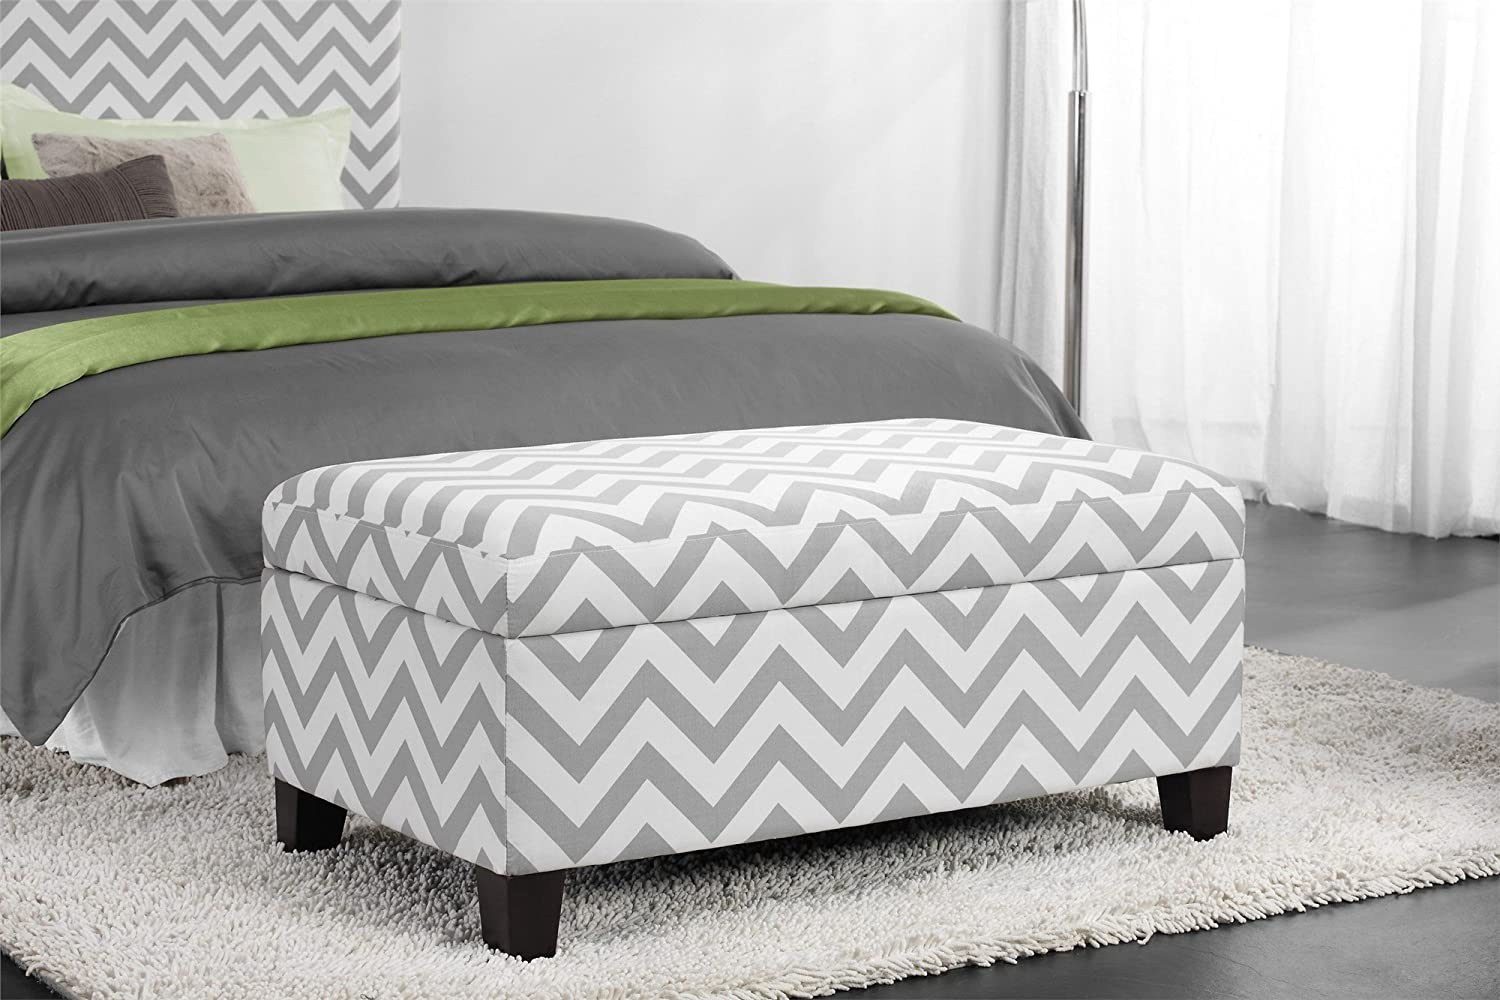 Amazon.com: Dorel Living Chevron Storage Ottoman: Kitchen & Dining